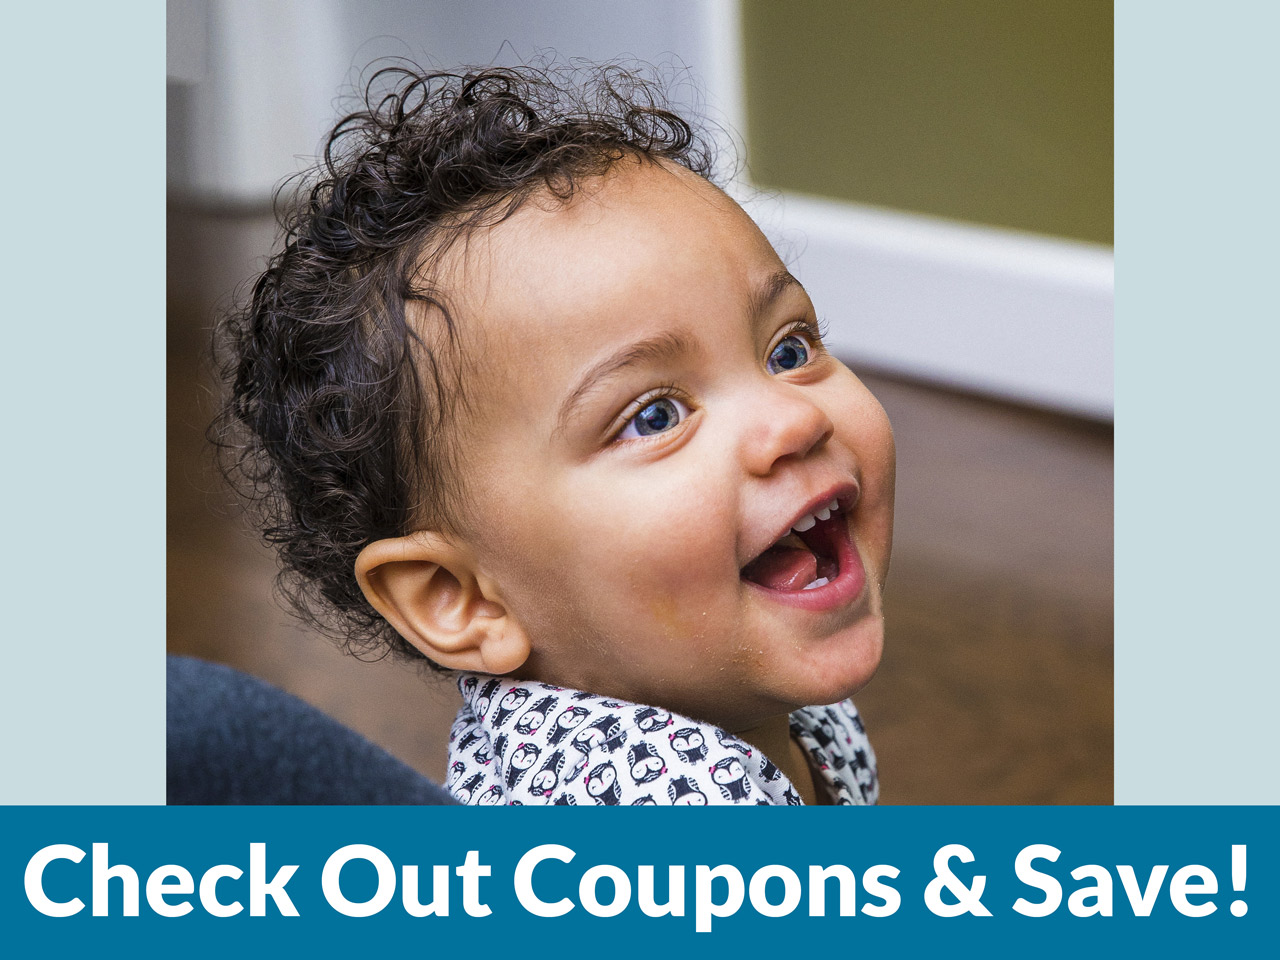 Save with Special Coupons